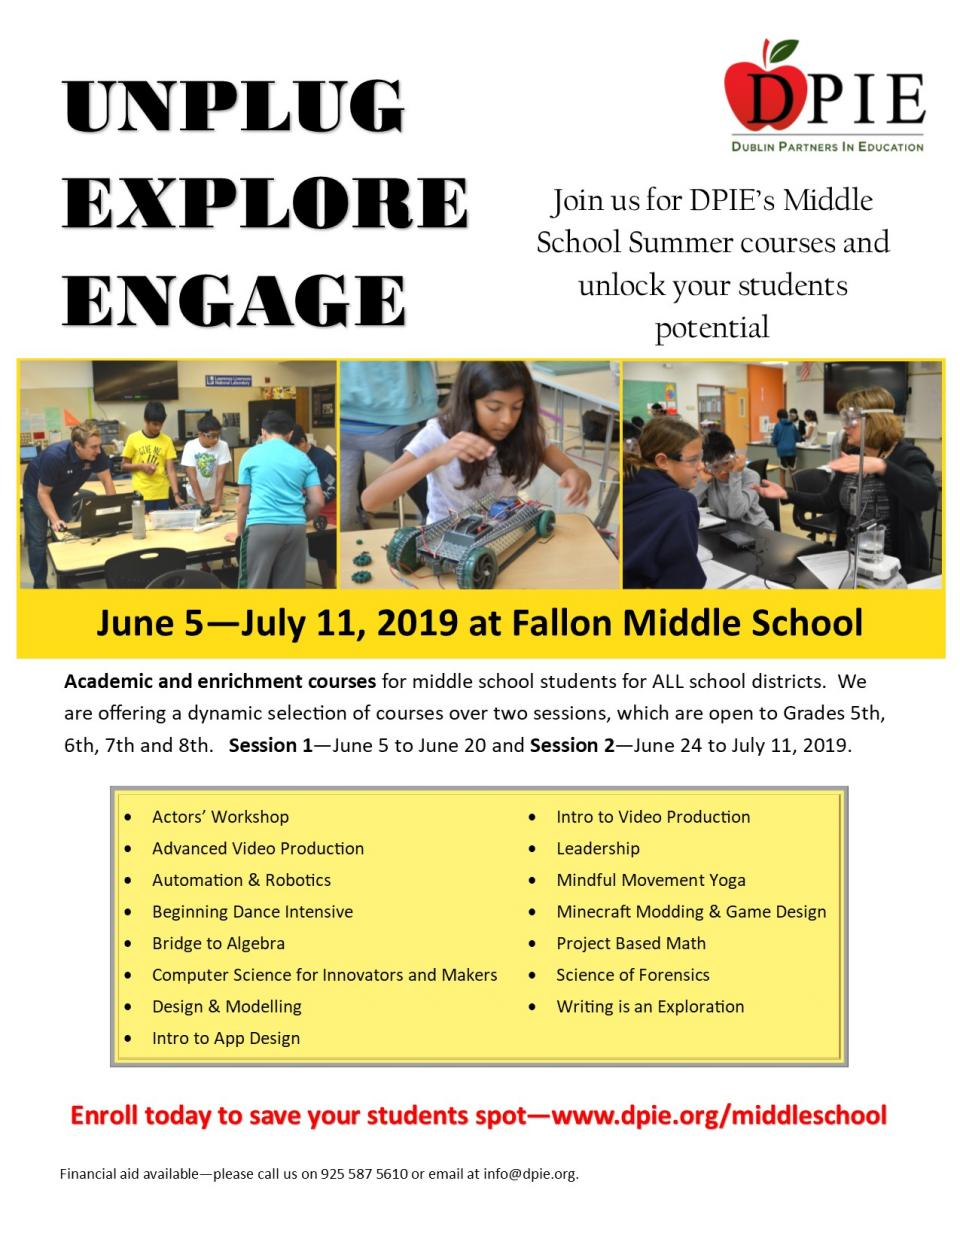 DPIE Middle School Summer Camps